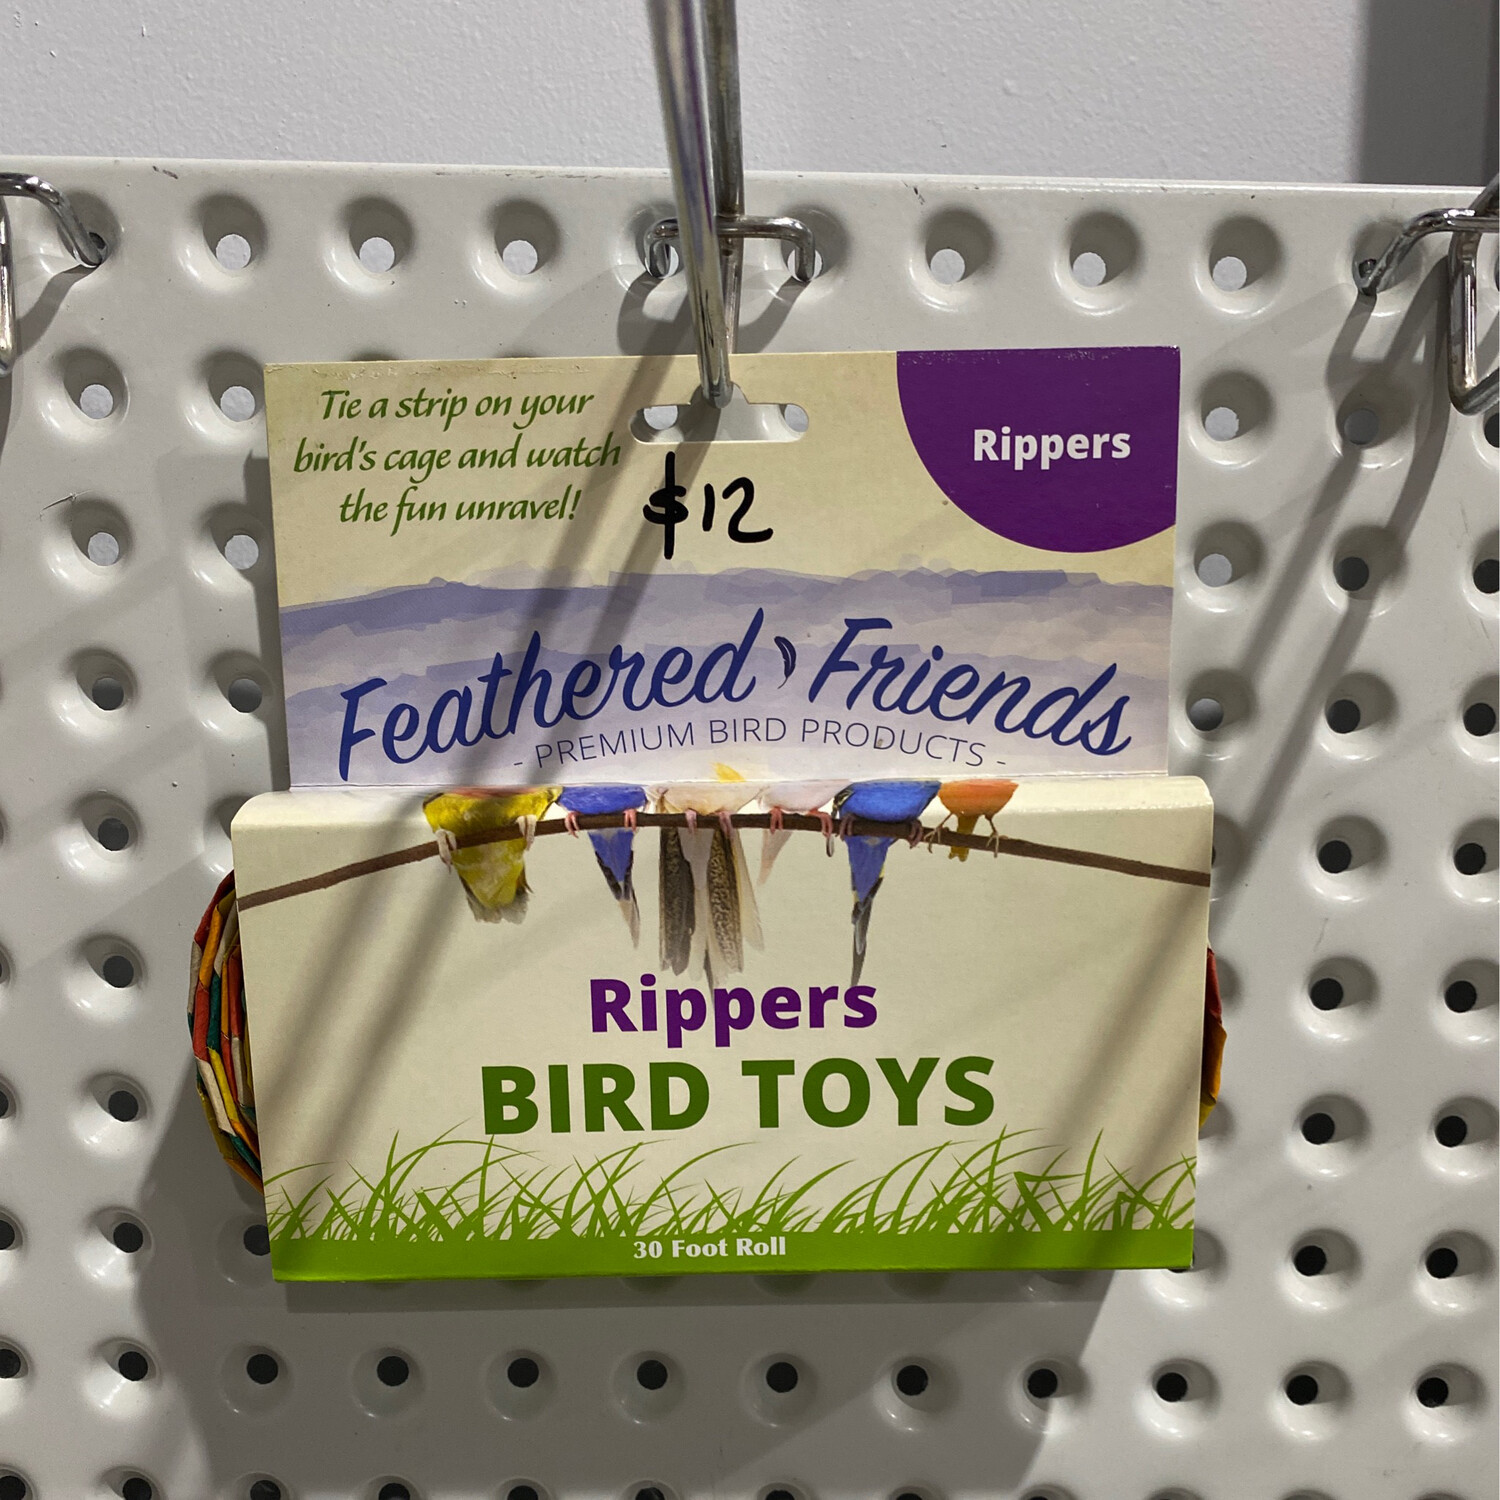 Feathered Friends Rippers